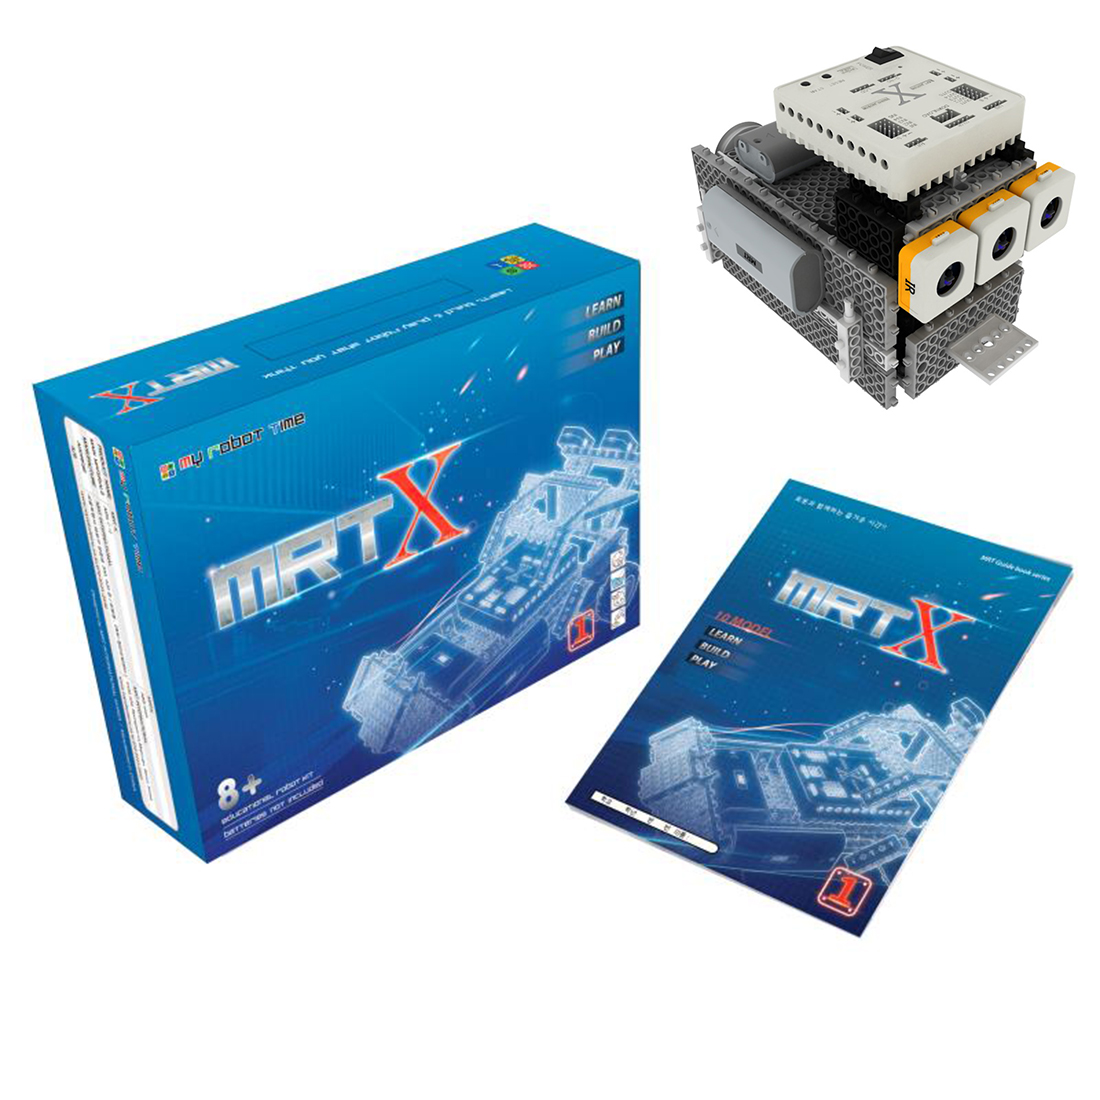 My Robot Time MRT X-1 Robots Building Block Kit Assembly Programmable Educational Robot Toy For 12-15 Years Old